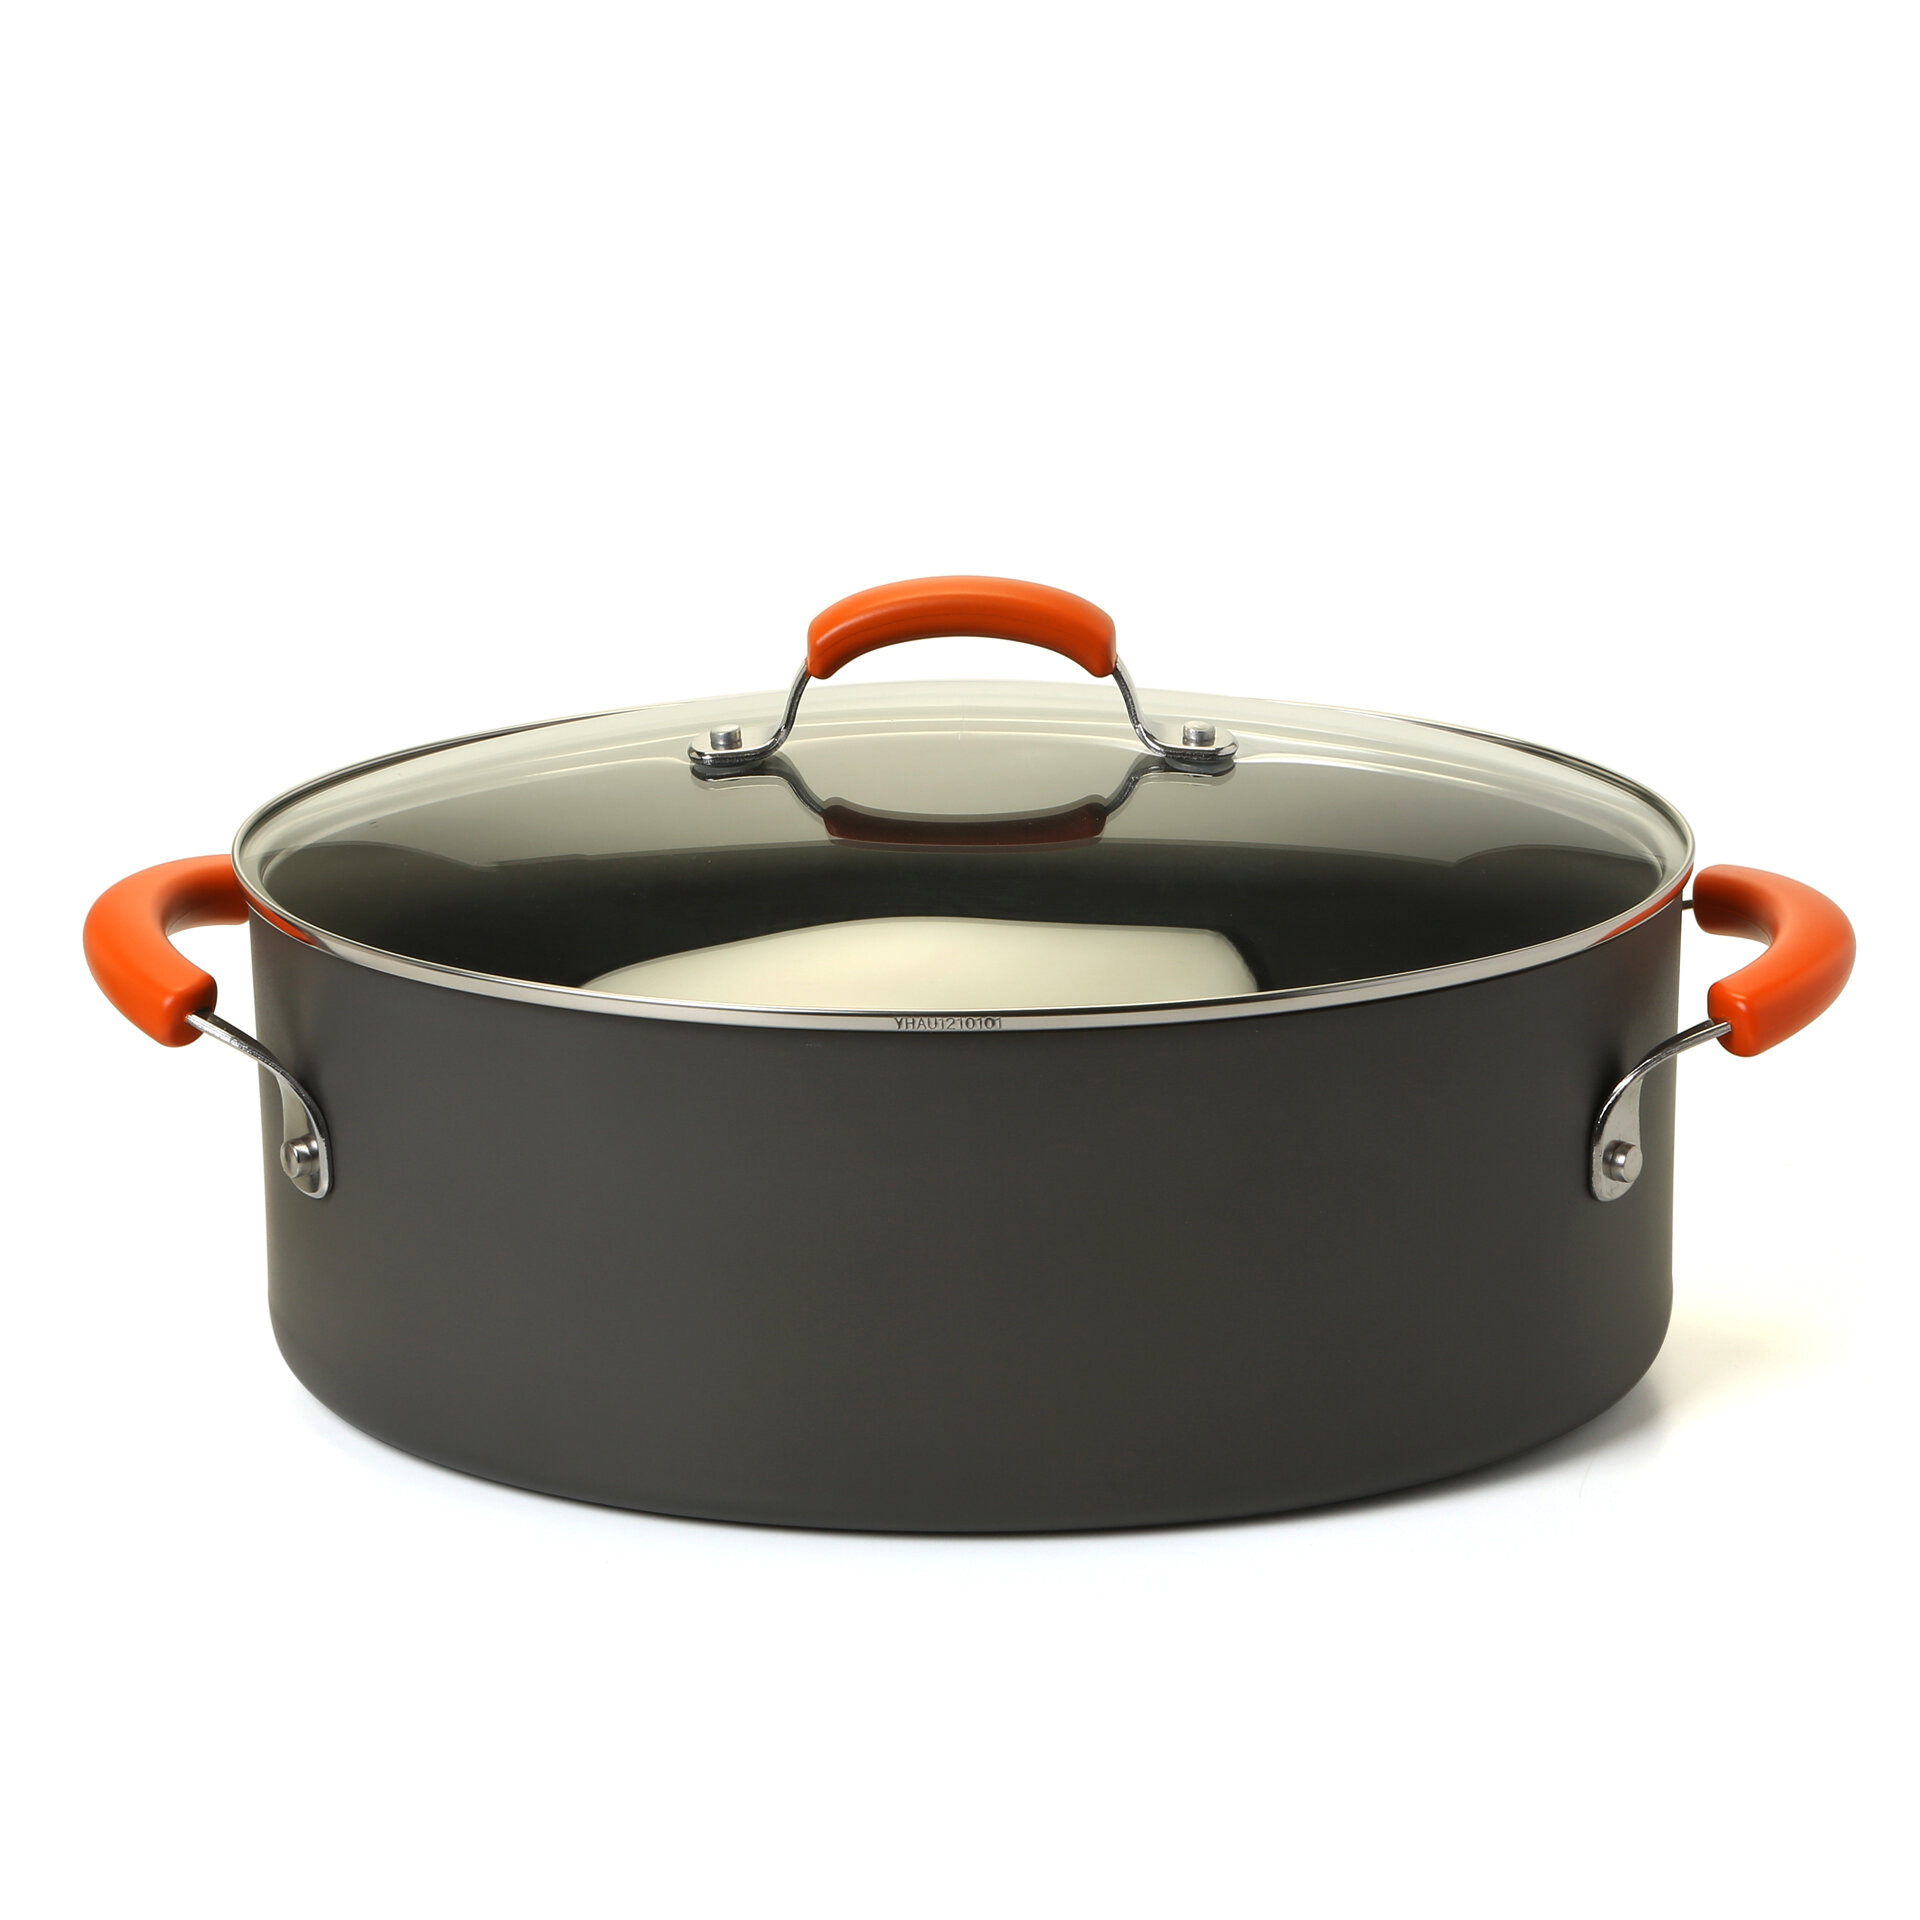 Rachael Ray Hard Anodized 8 Qt Stock Pot With Lid Reviews